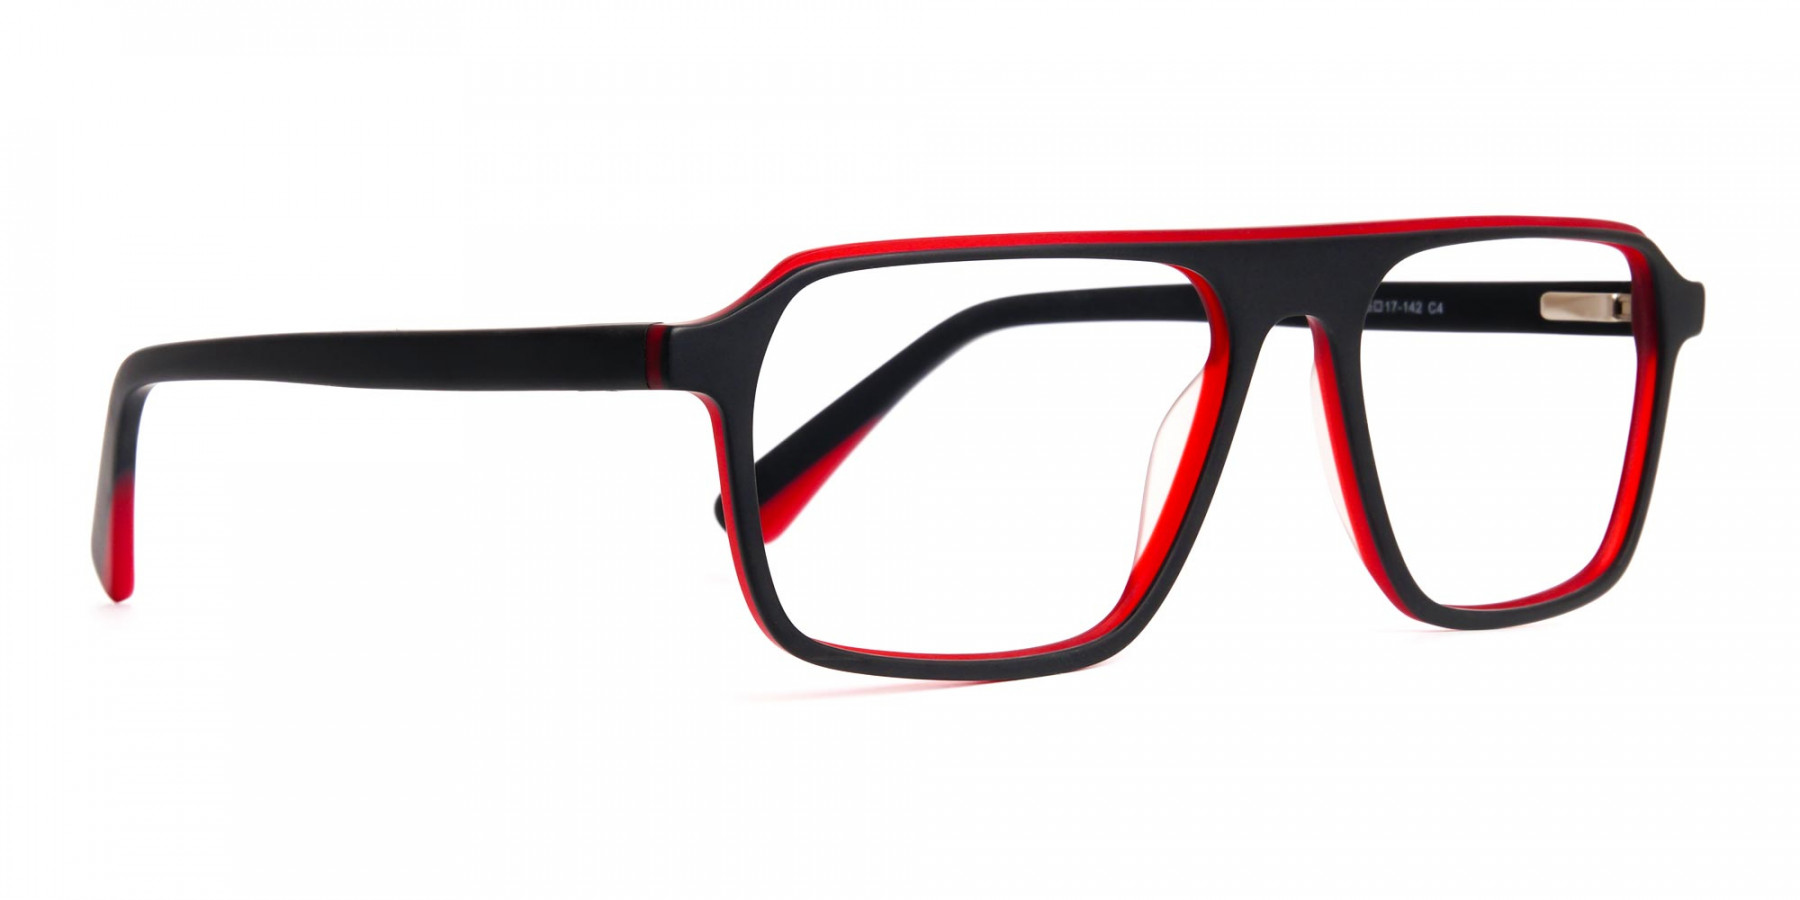 Black-and-Red-Rectangular-Full-Rim-Glasses-frames-1